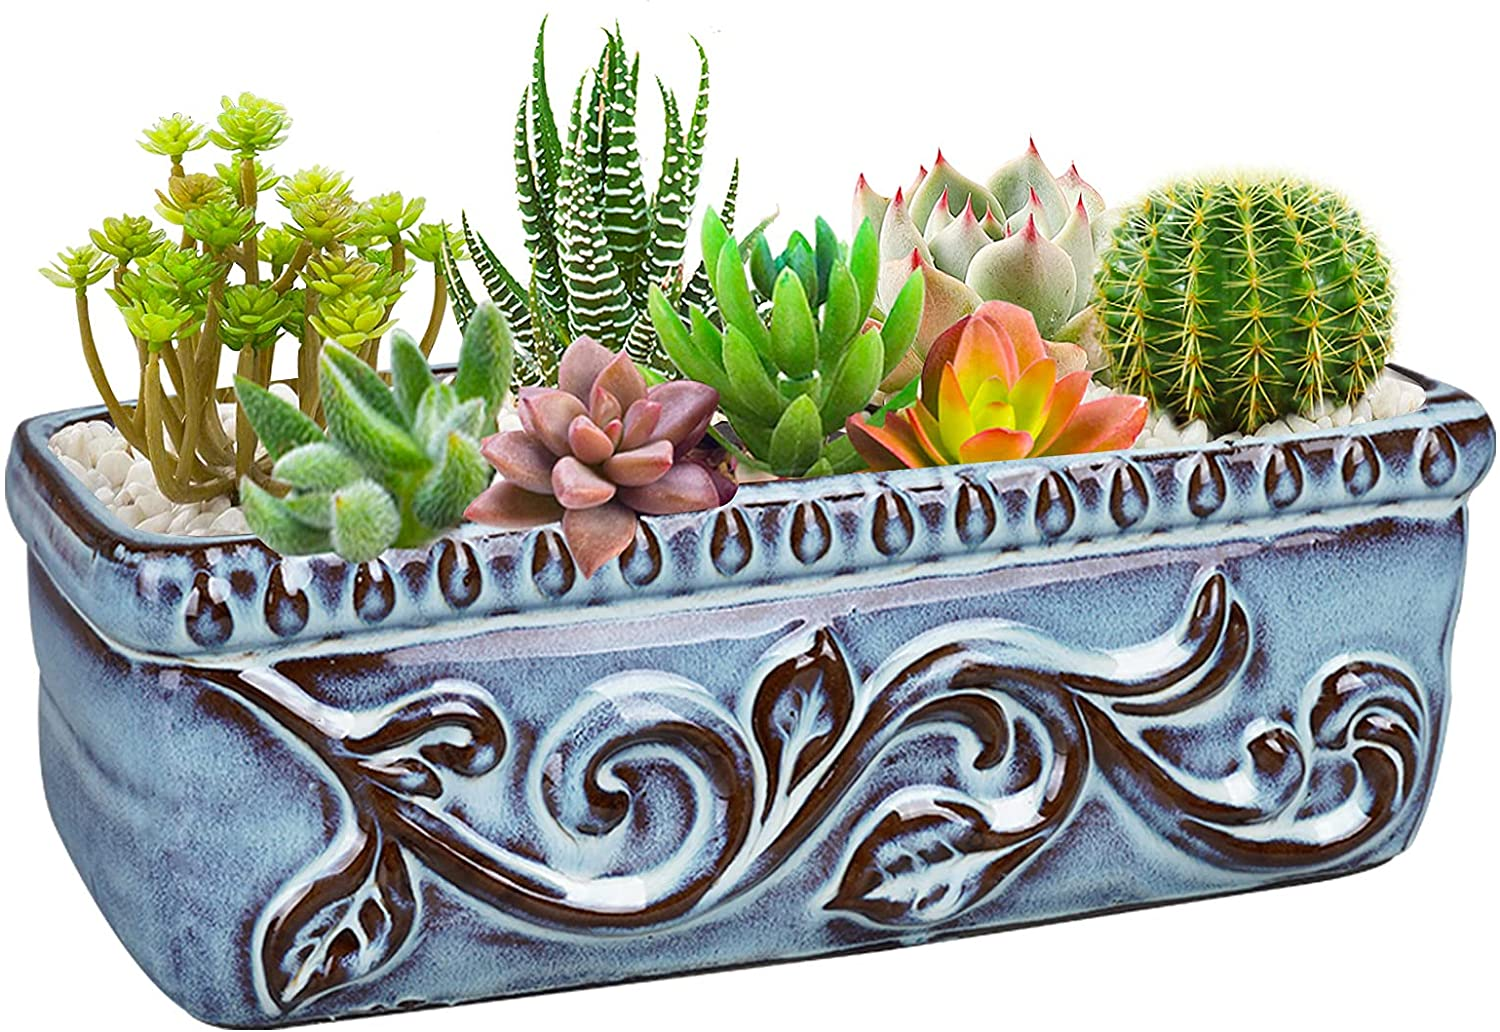 Fivepot 10 Inch Blue Ceramic Flower Pot Rectangular Planter for Succulent Arrangement Herb Plants Indoor and Outdoor with Drainage Hole